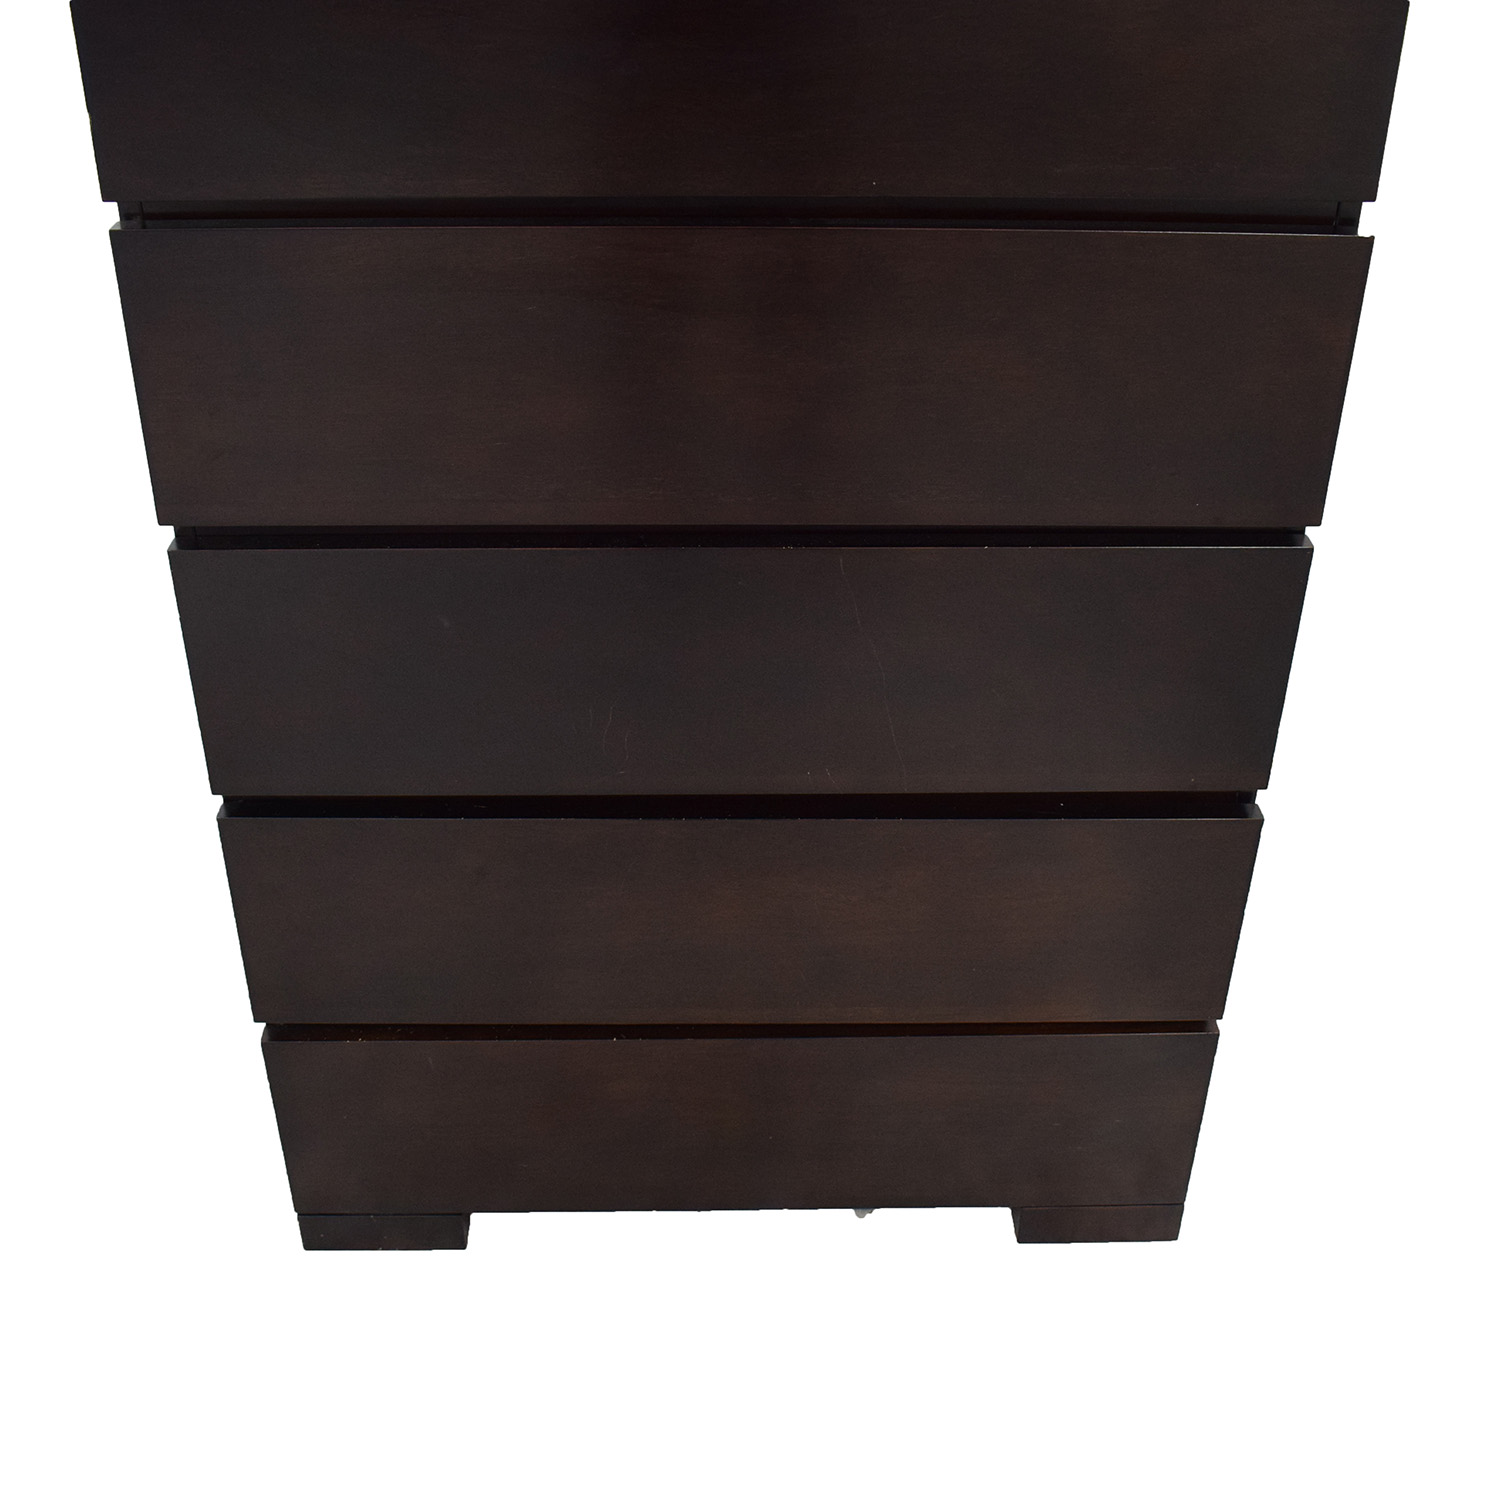 Ligna Furniture Ligna Furniture Six Drawer Dresser dimensions